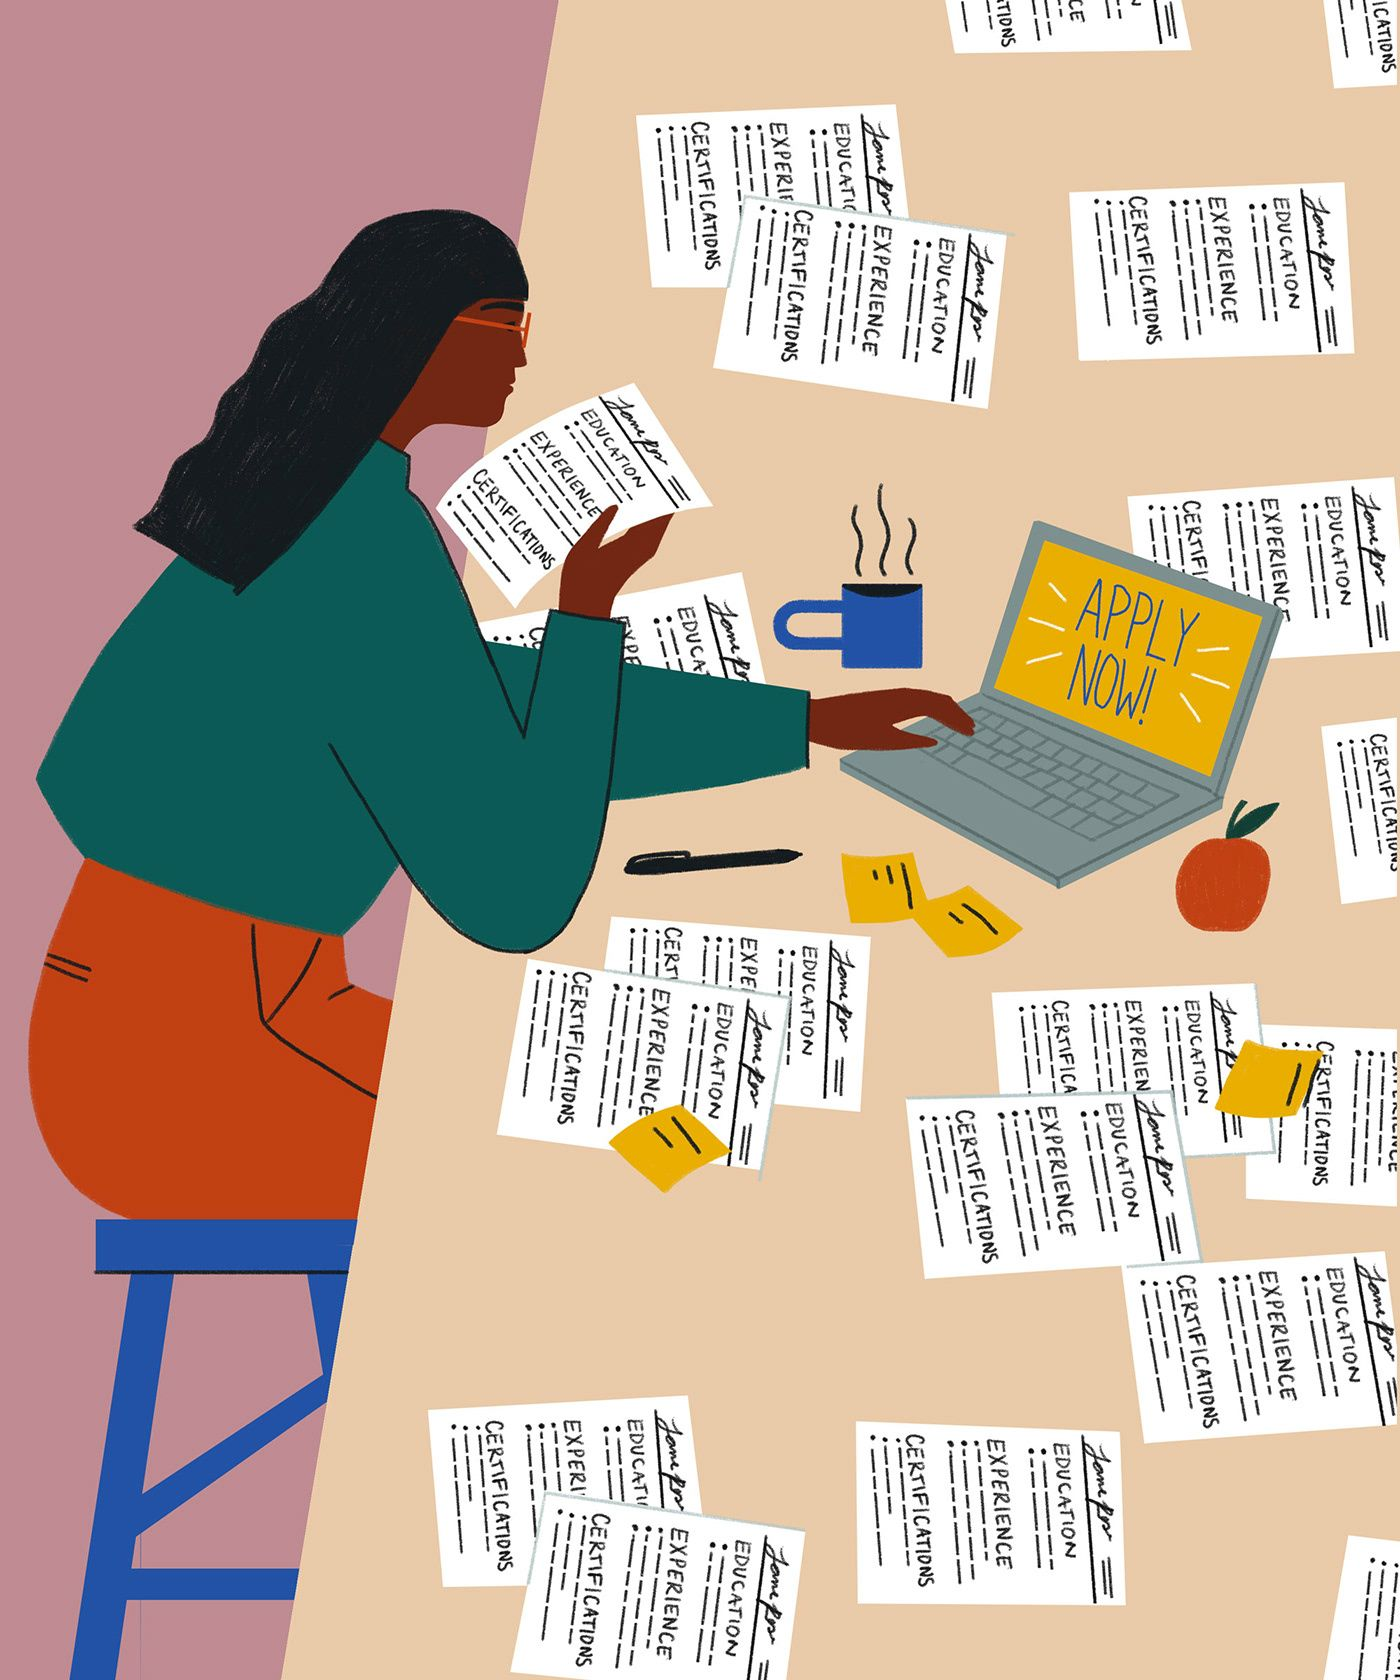 Refinery 29 Salary Stories on Behance in 2020 Business